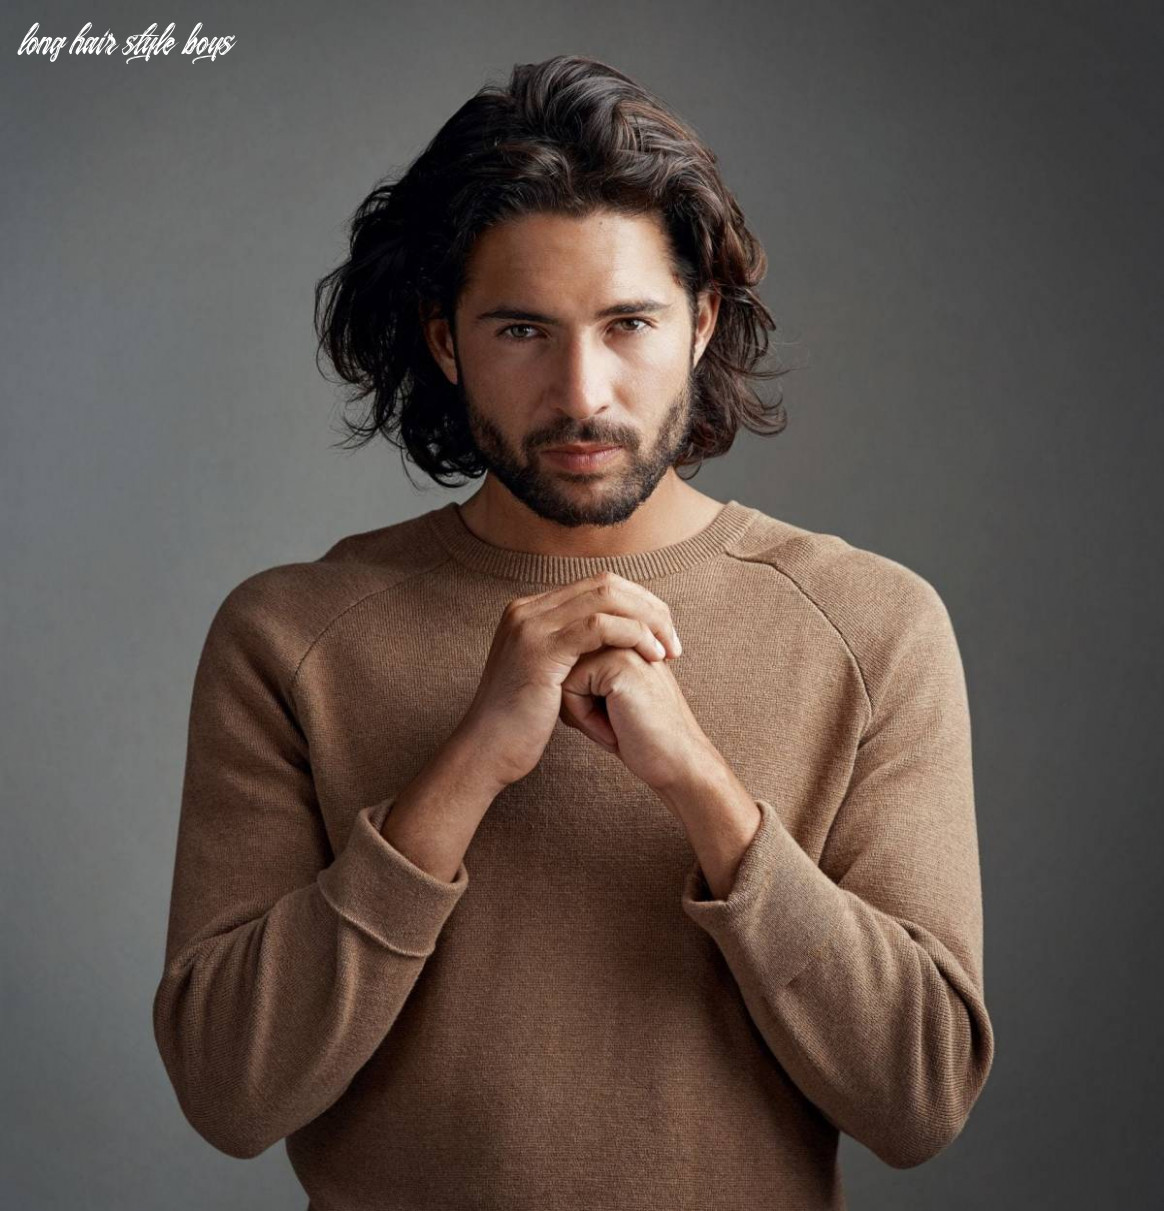 10 incredible long hairstyles & haircuts for men long hair style boys